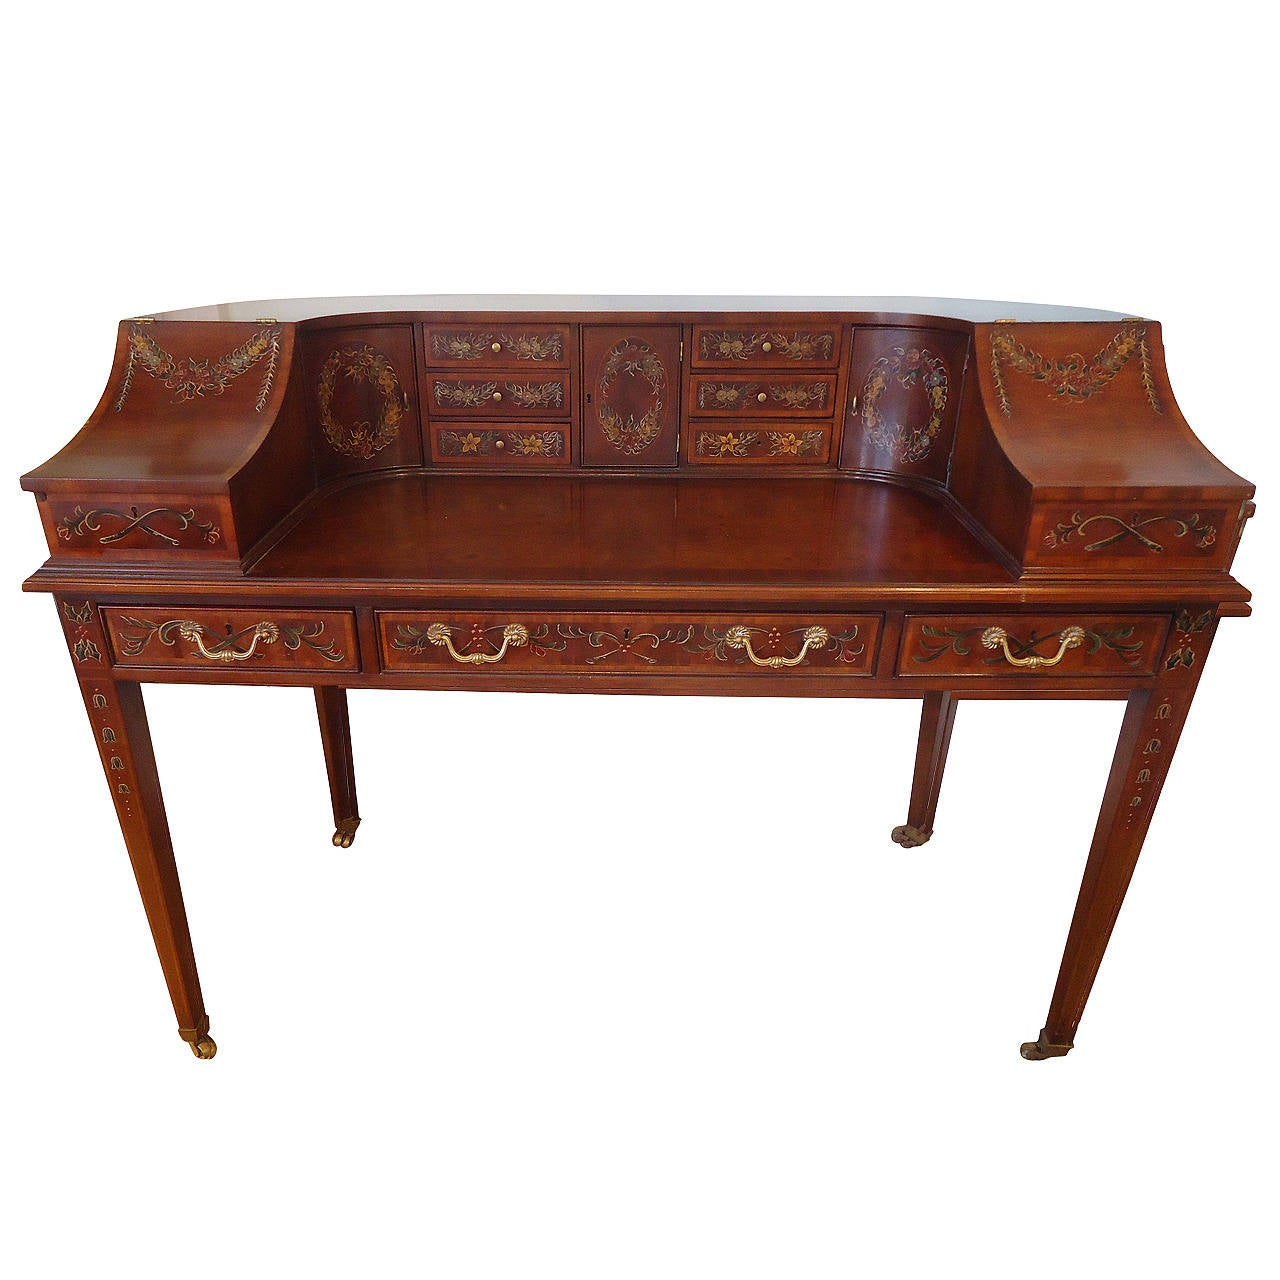 #6D3423  Carlton House Curved Hand Painted Writing Desk Is No Longer Available with 1280x1280 px of Best Painted Writing Desk 12801280 image @ avoidforclosure.info